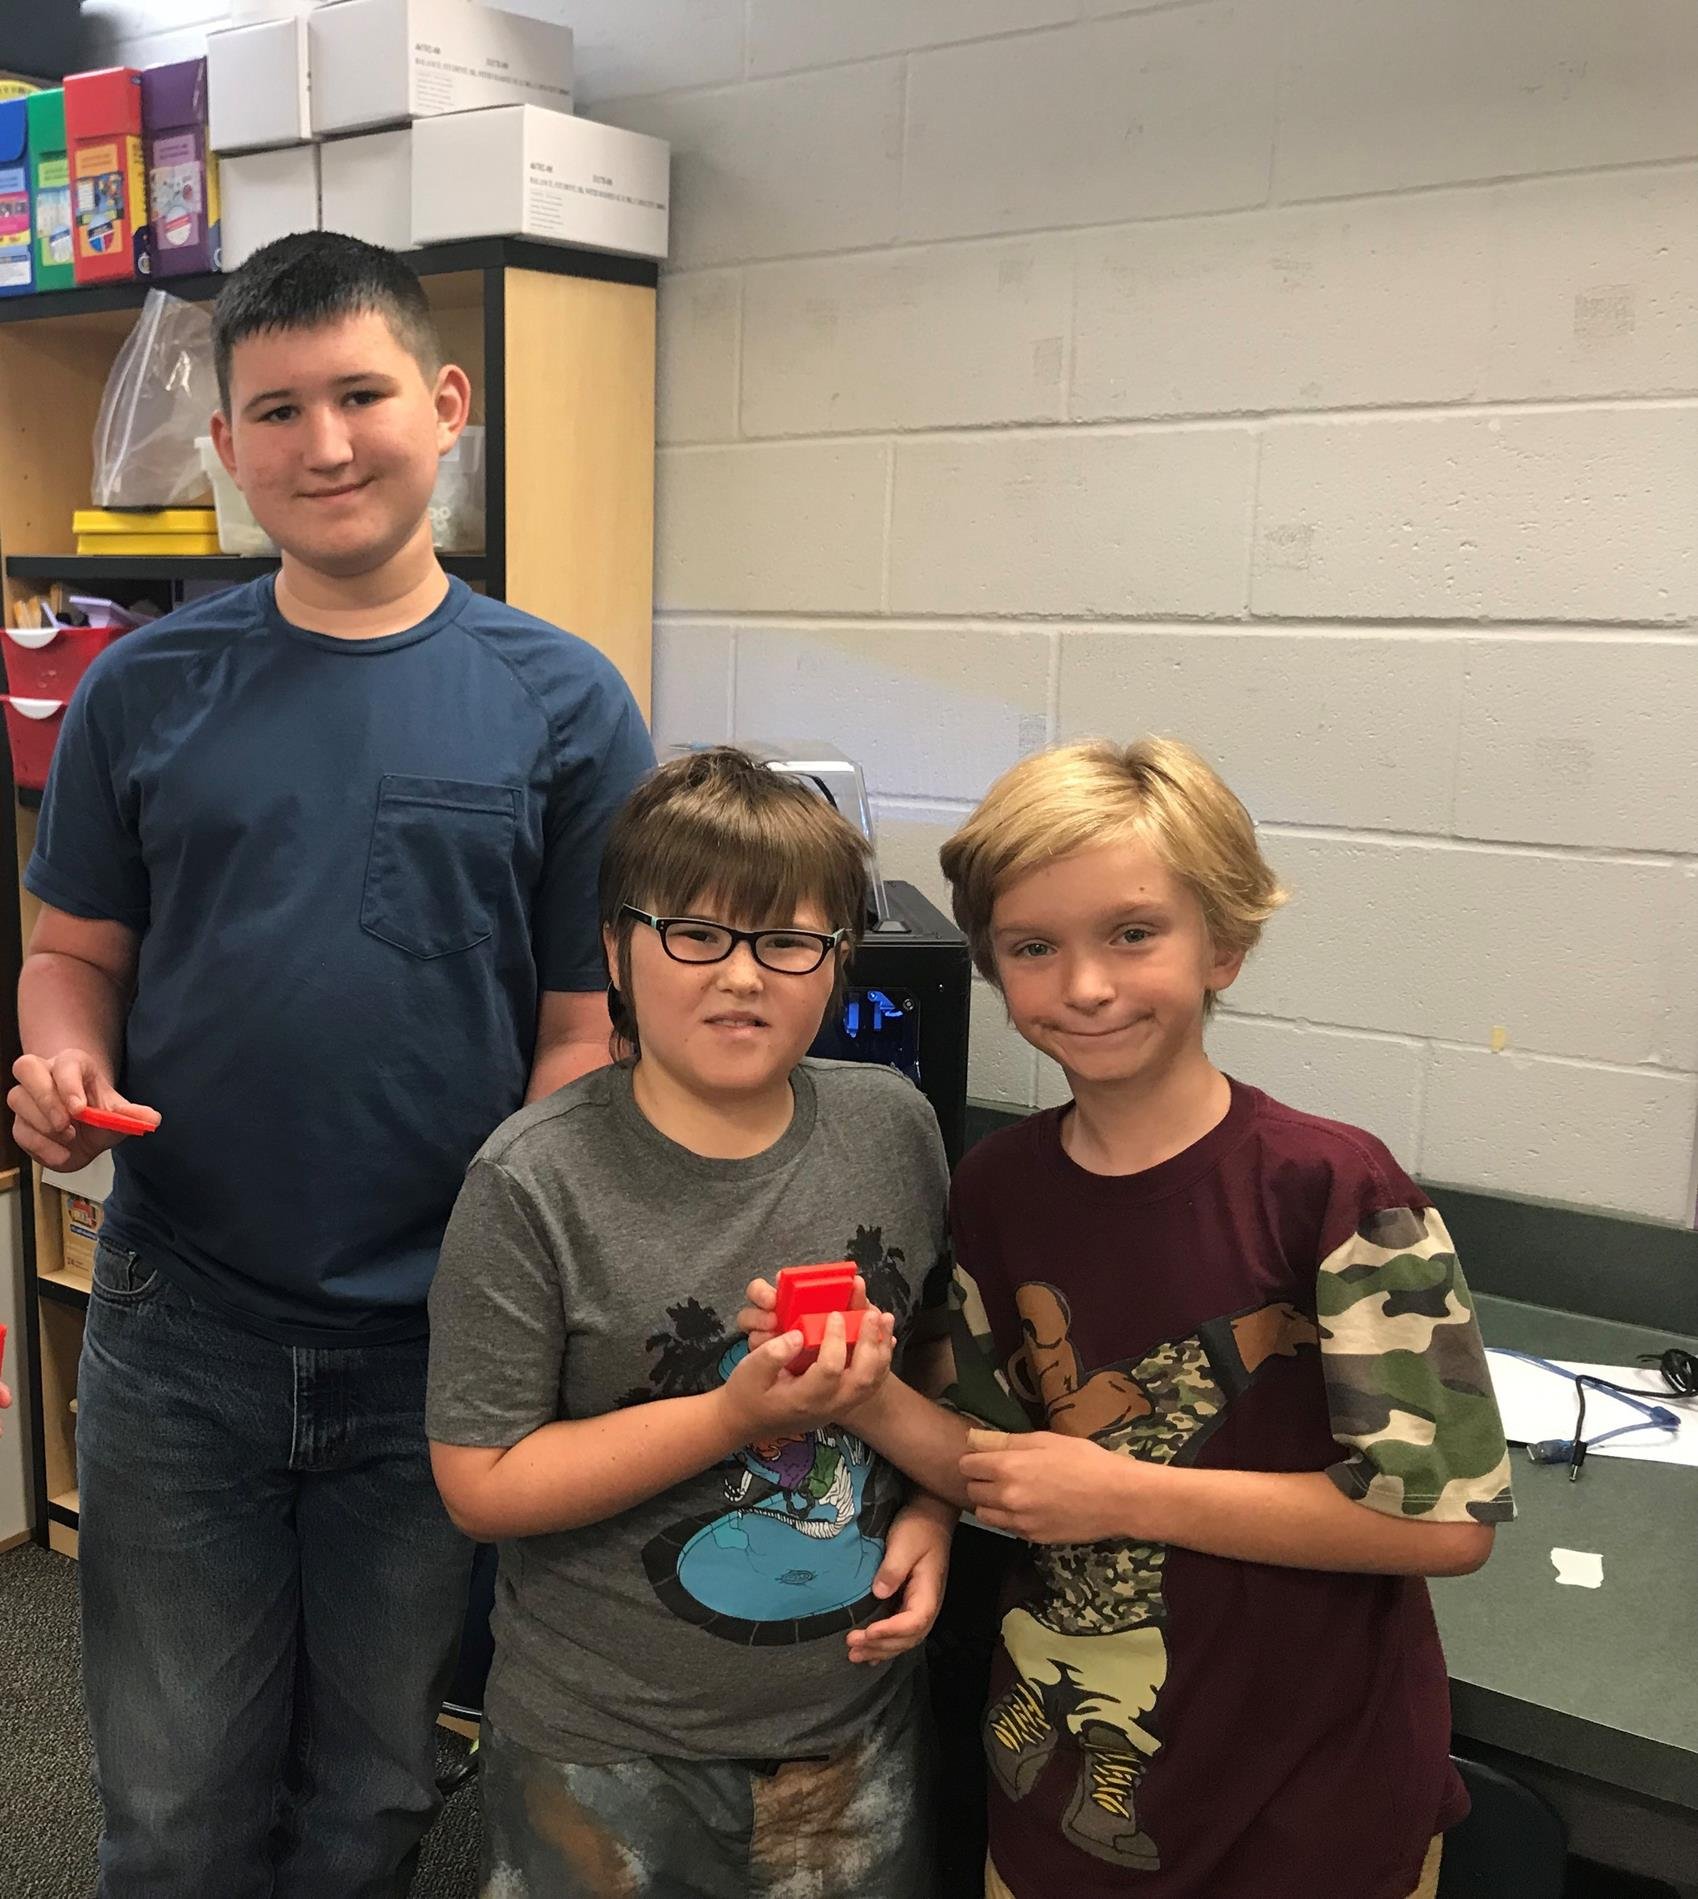 Students with created 3D objects